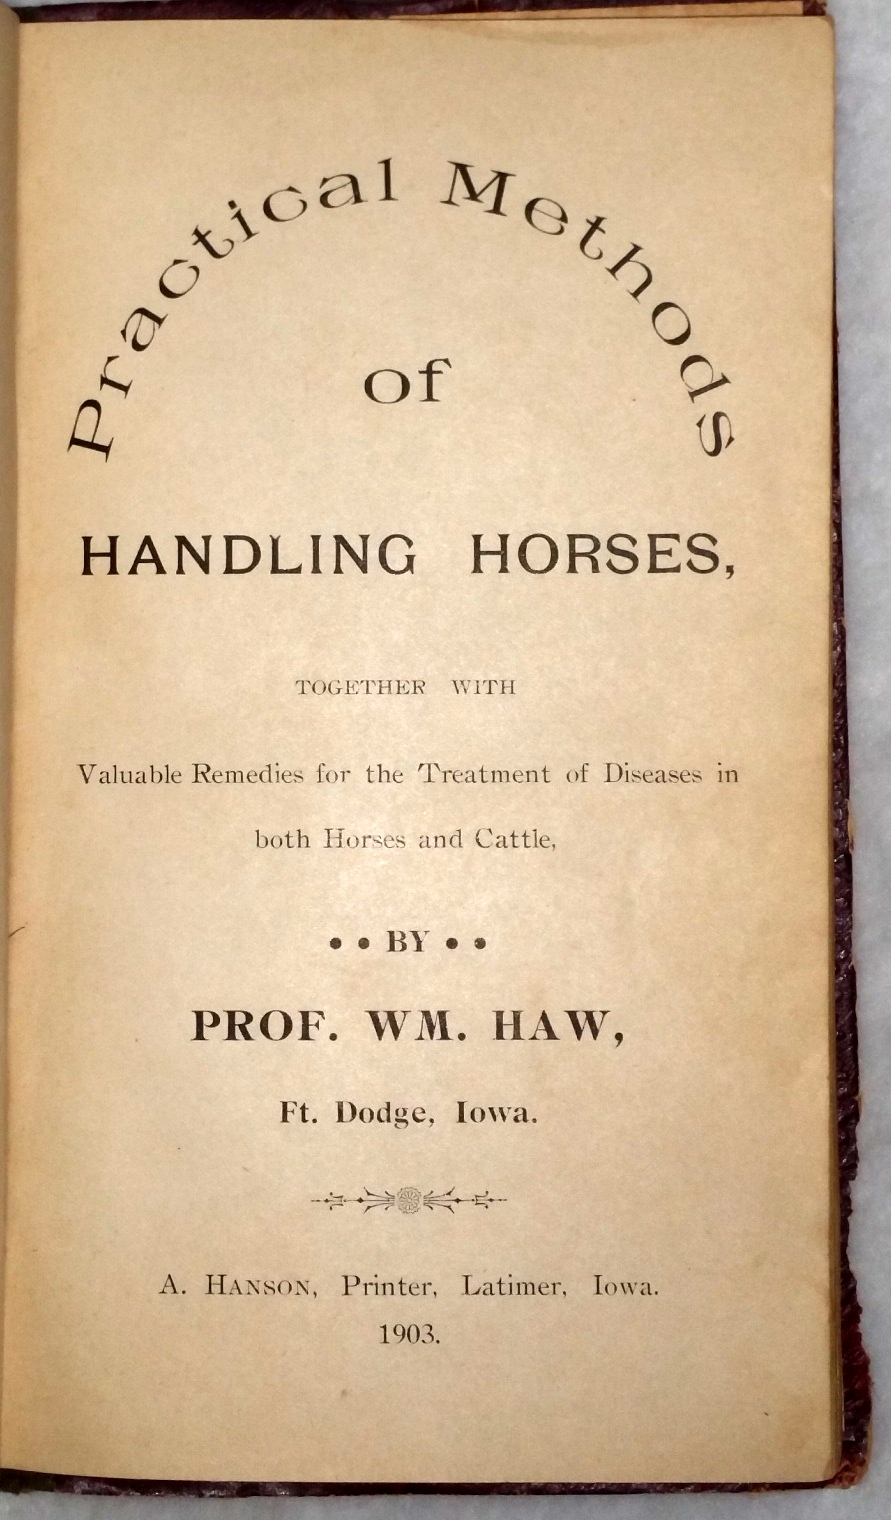 Image for Practical Methods of Handling Horses, Together with Valuable Remedies for the Treatment of Diseases in Both Horses and Cattle